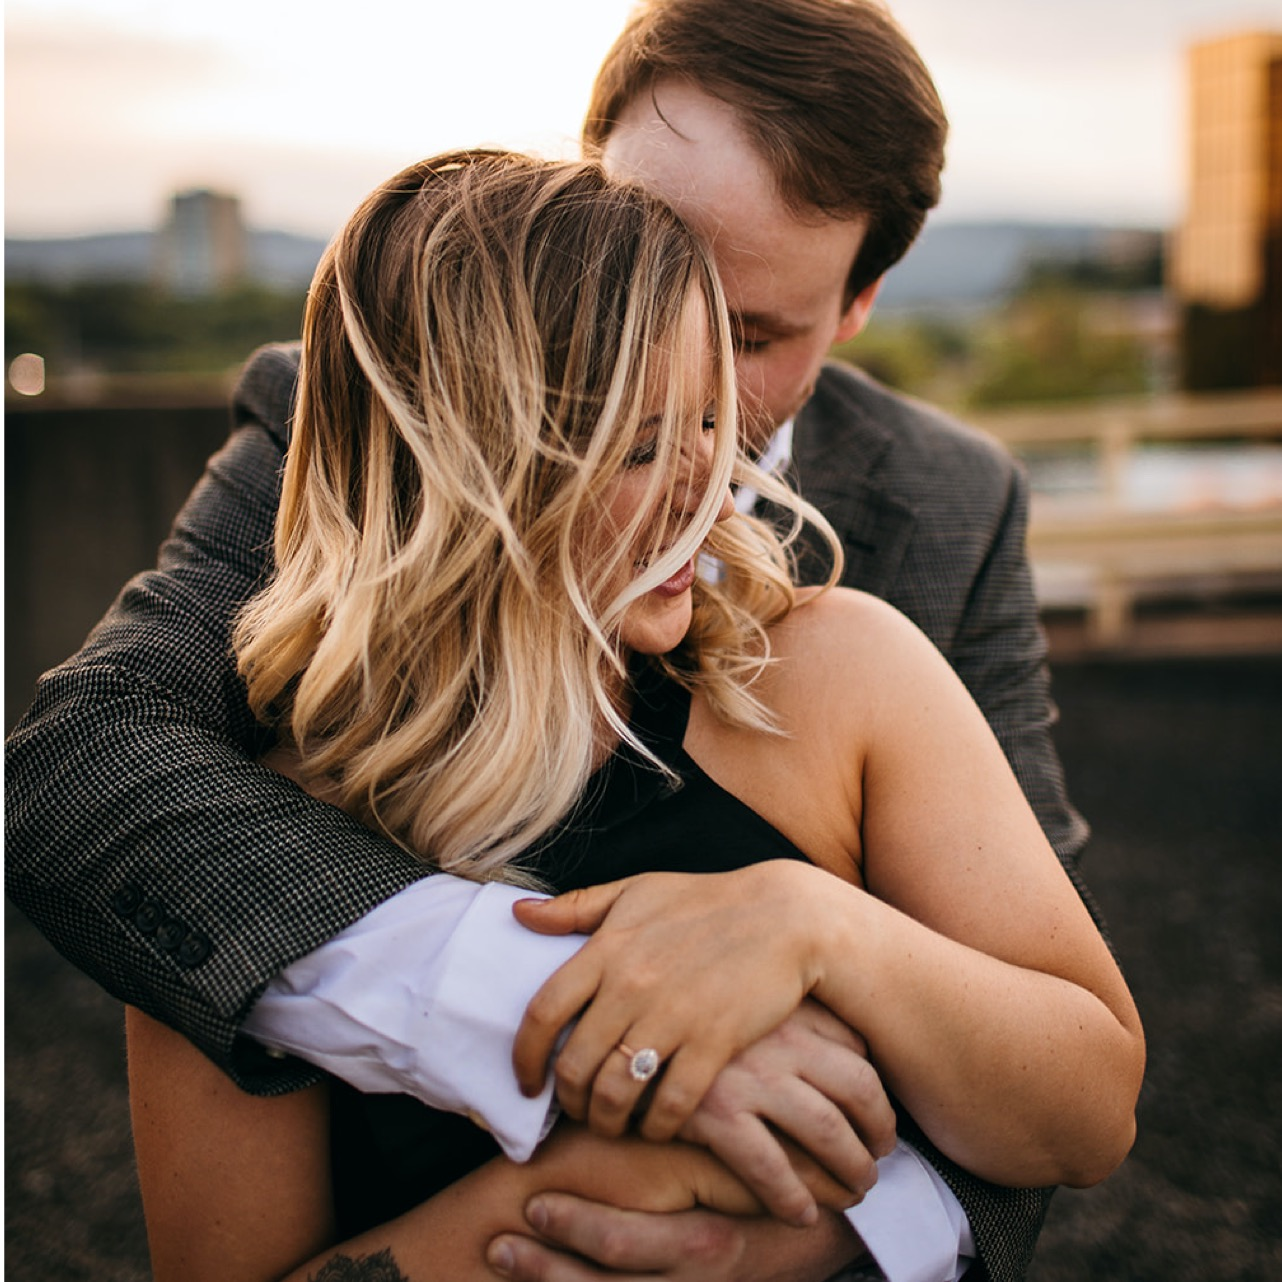 Fiances embrace on a downtown Chattanooga rooftop. You can see her oval diamond engagement ring.